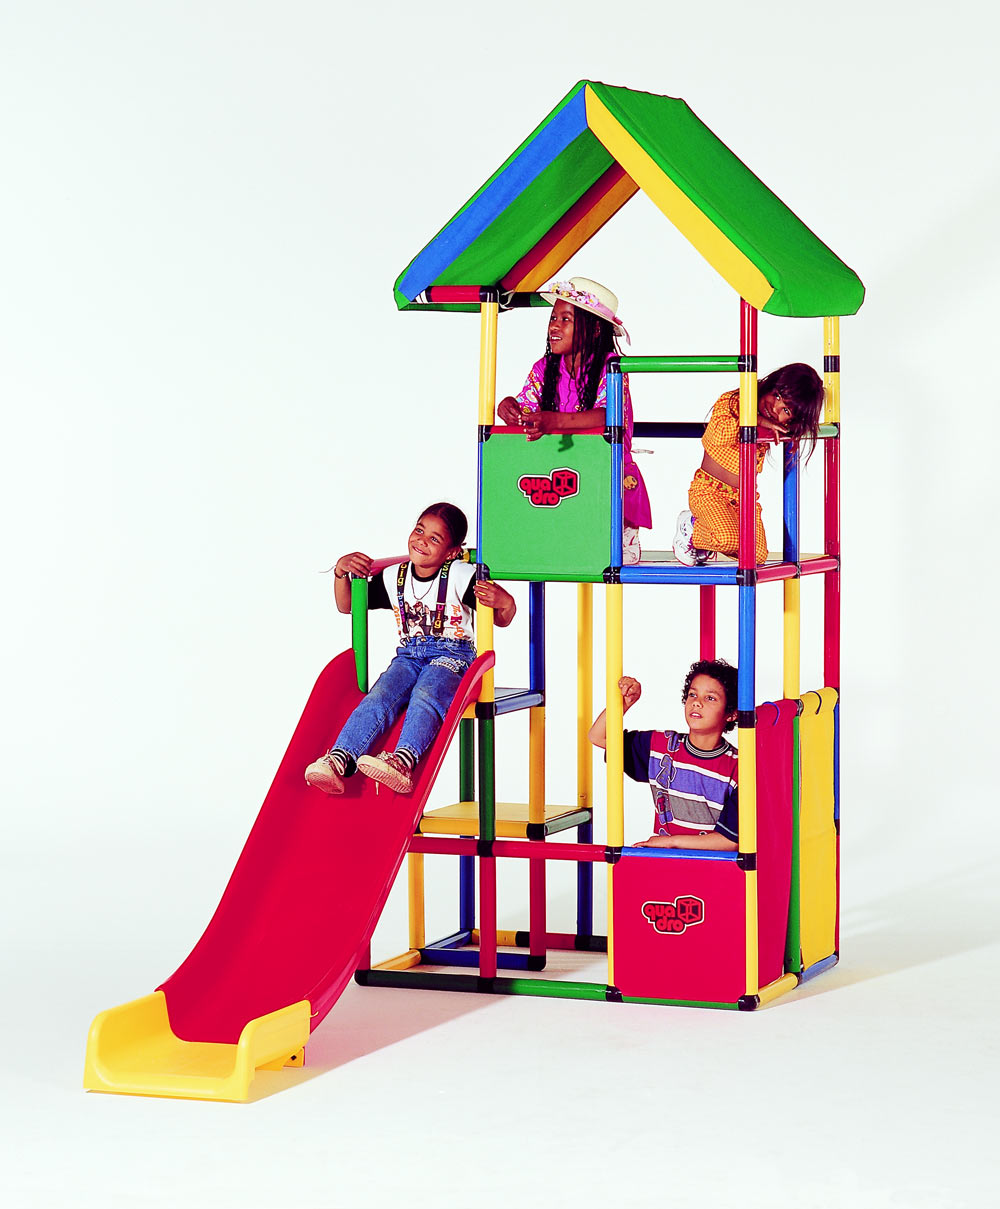 Kids in QUADRO playhouse